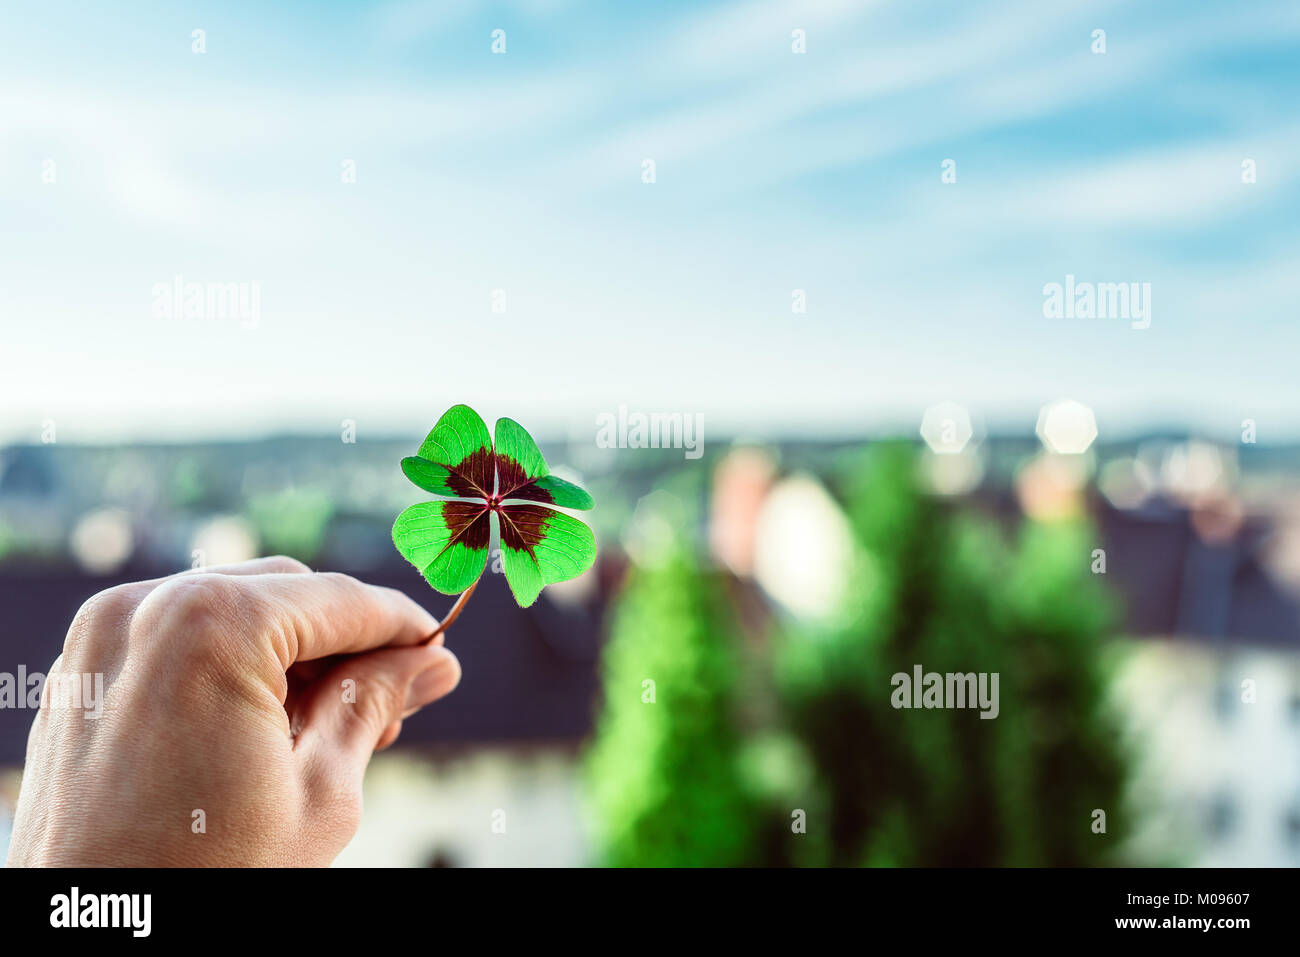 Closeup of a four leaf lucky clover held by a hand against skyline as template Stock Photo